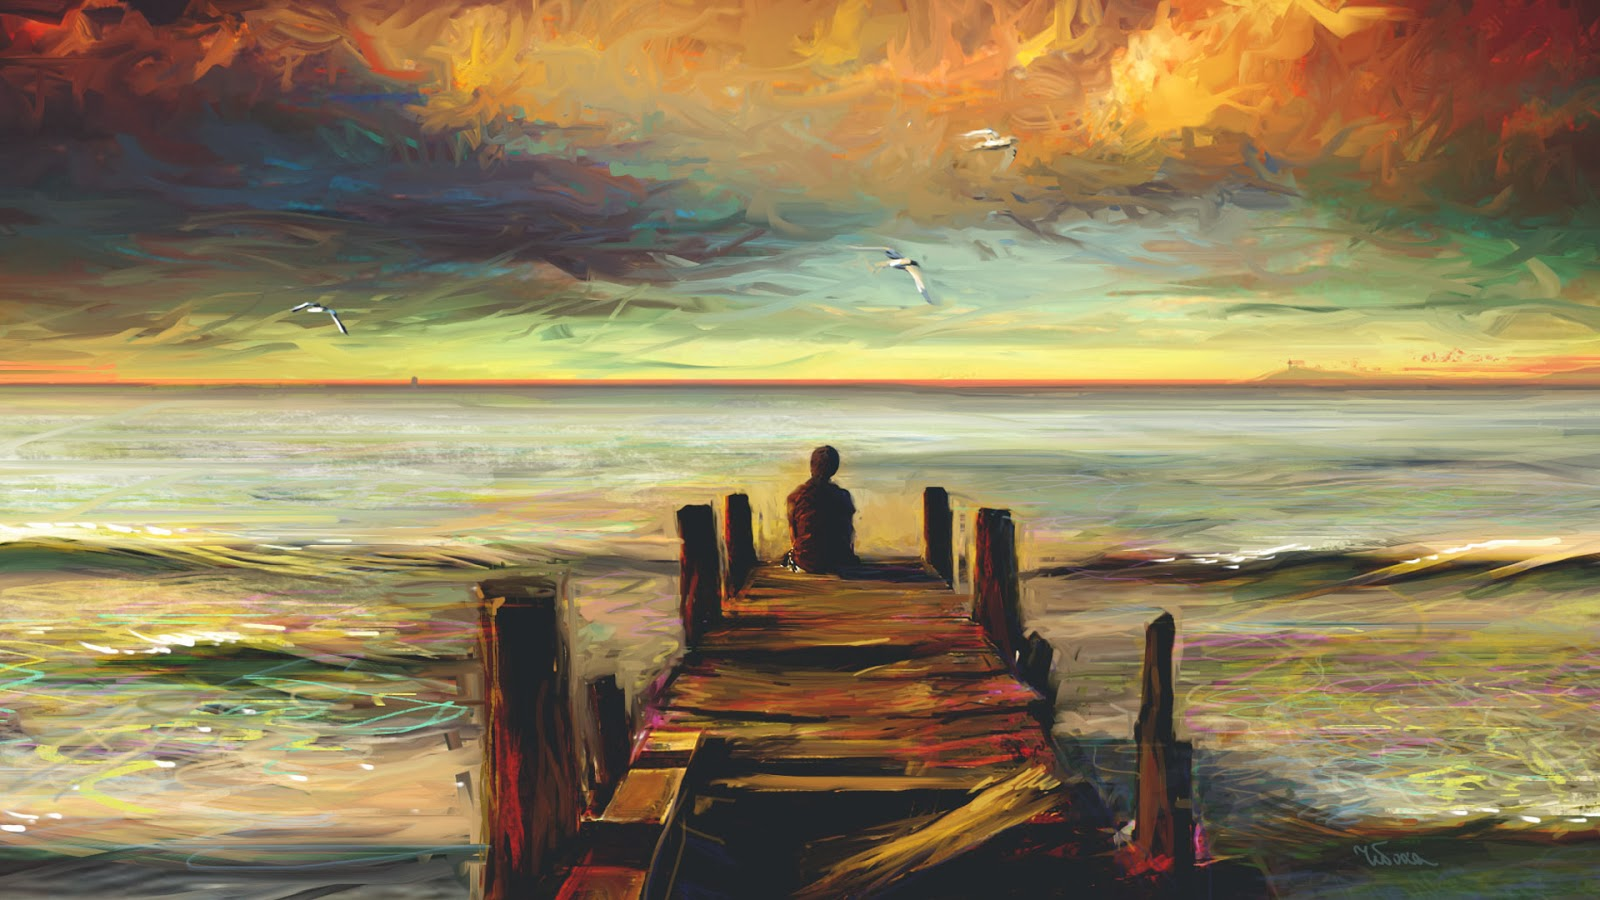 lonely boy at sea watching sunset oil painting - Free Painting Pictures